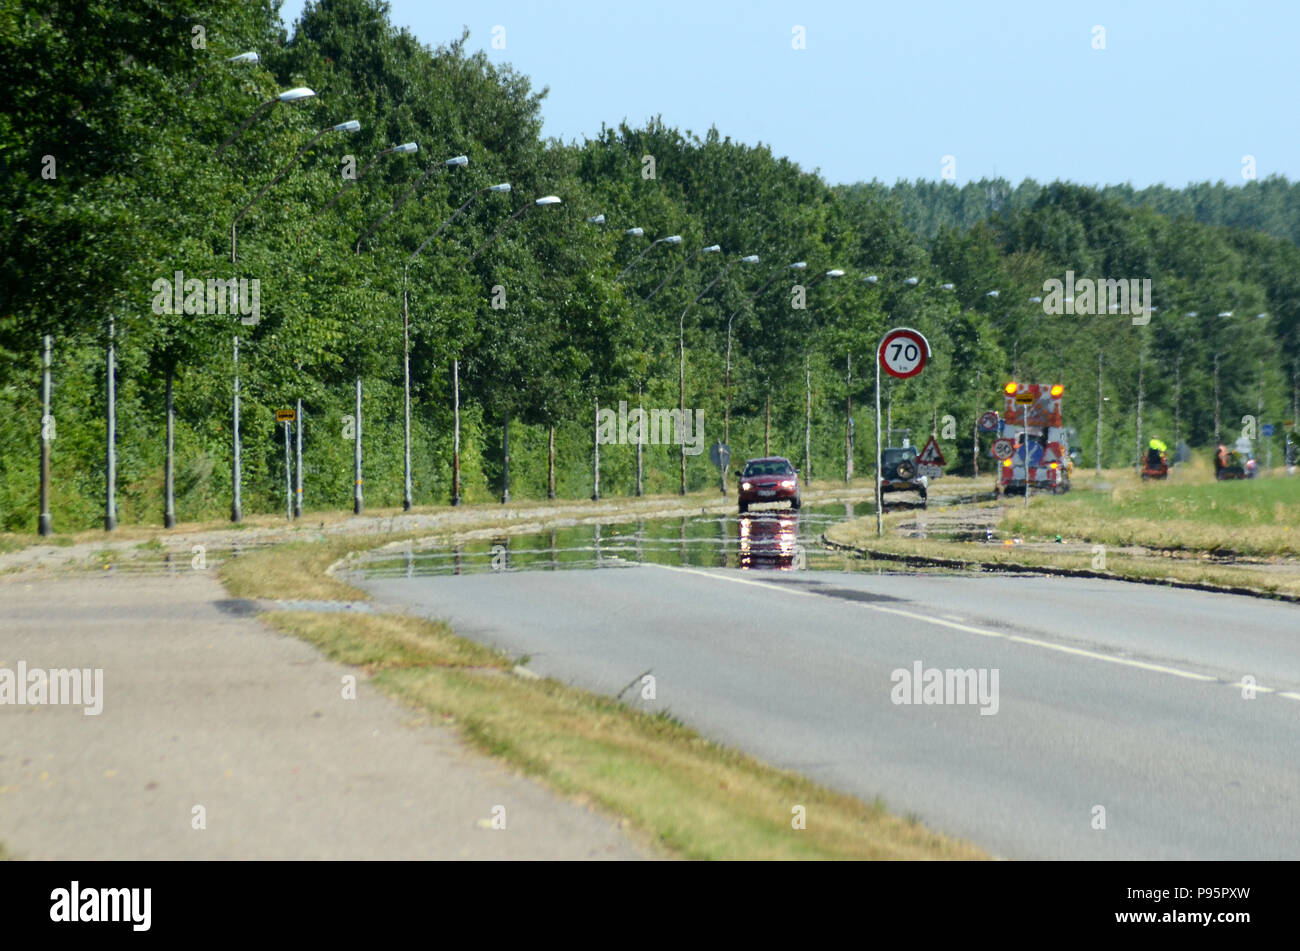 This road looks wet, but it is not, it is a mirage caused by a layer of hot air over the asphalt, heat distortion also obscuress the structures most f - Stock Image